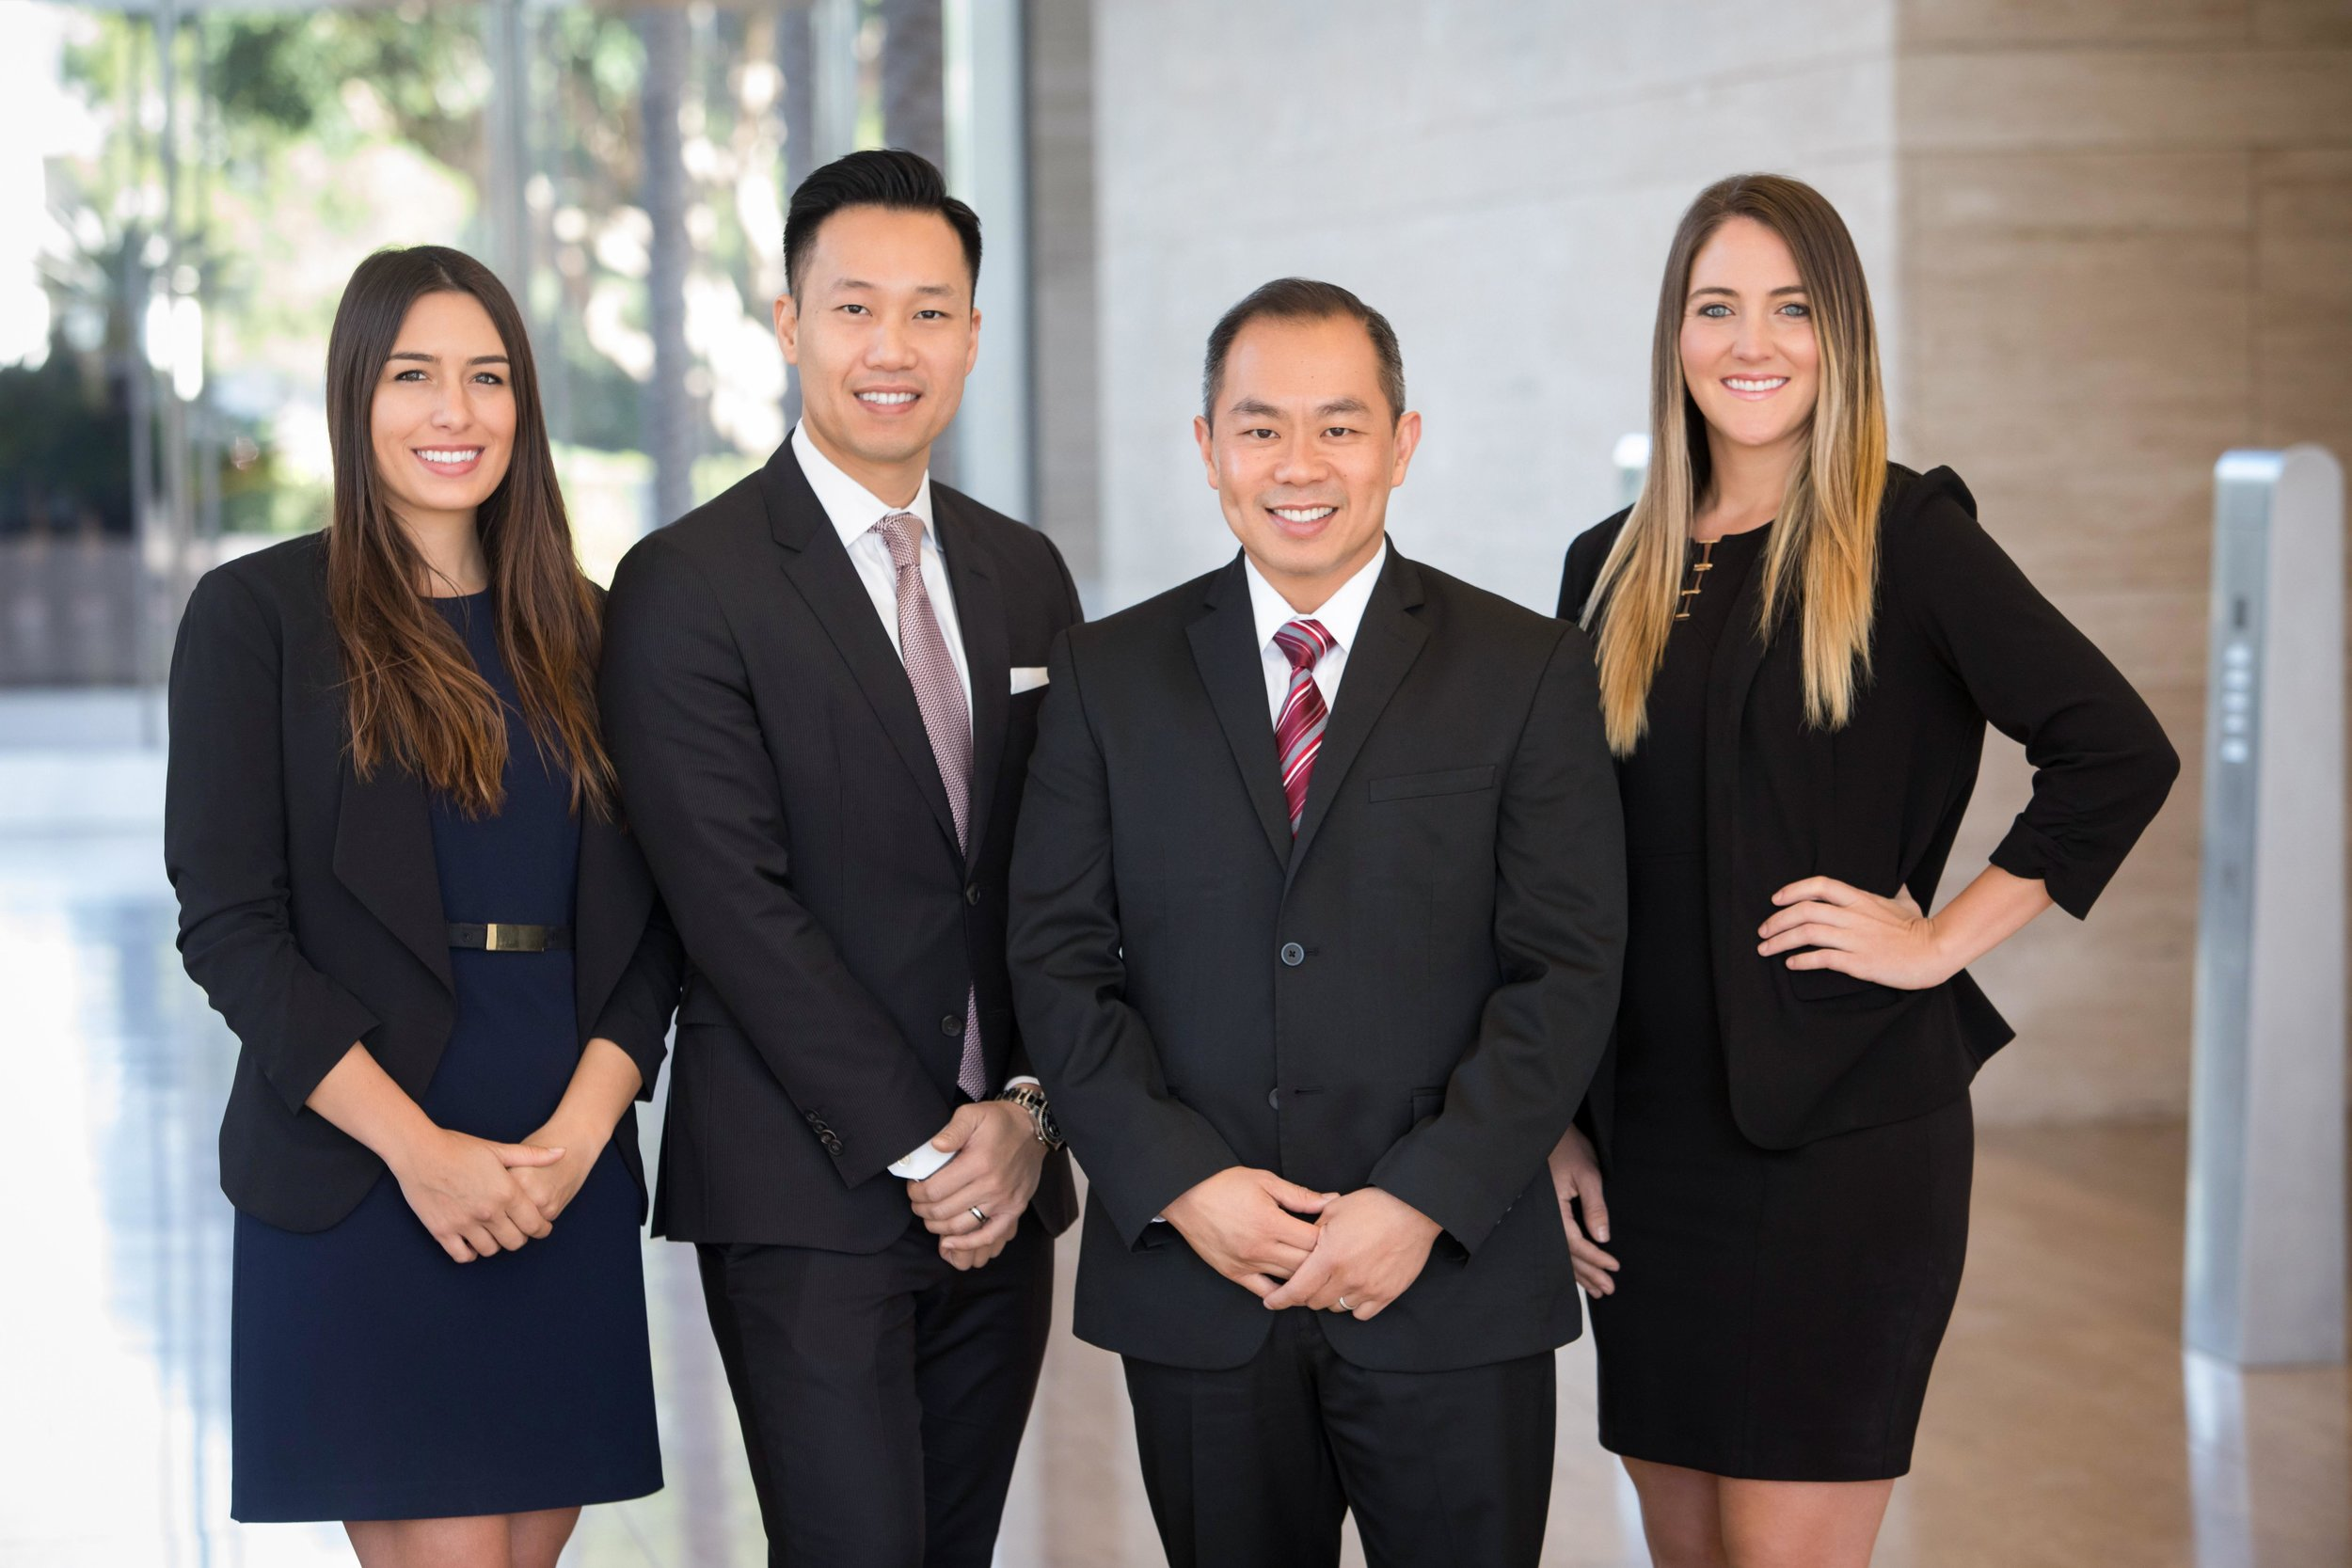 Professional corporate headshot and team photography for Merrill Lynch financial advisors and directors men and women.